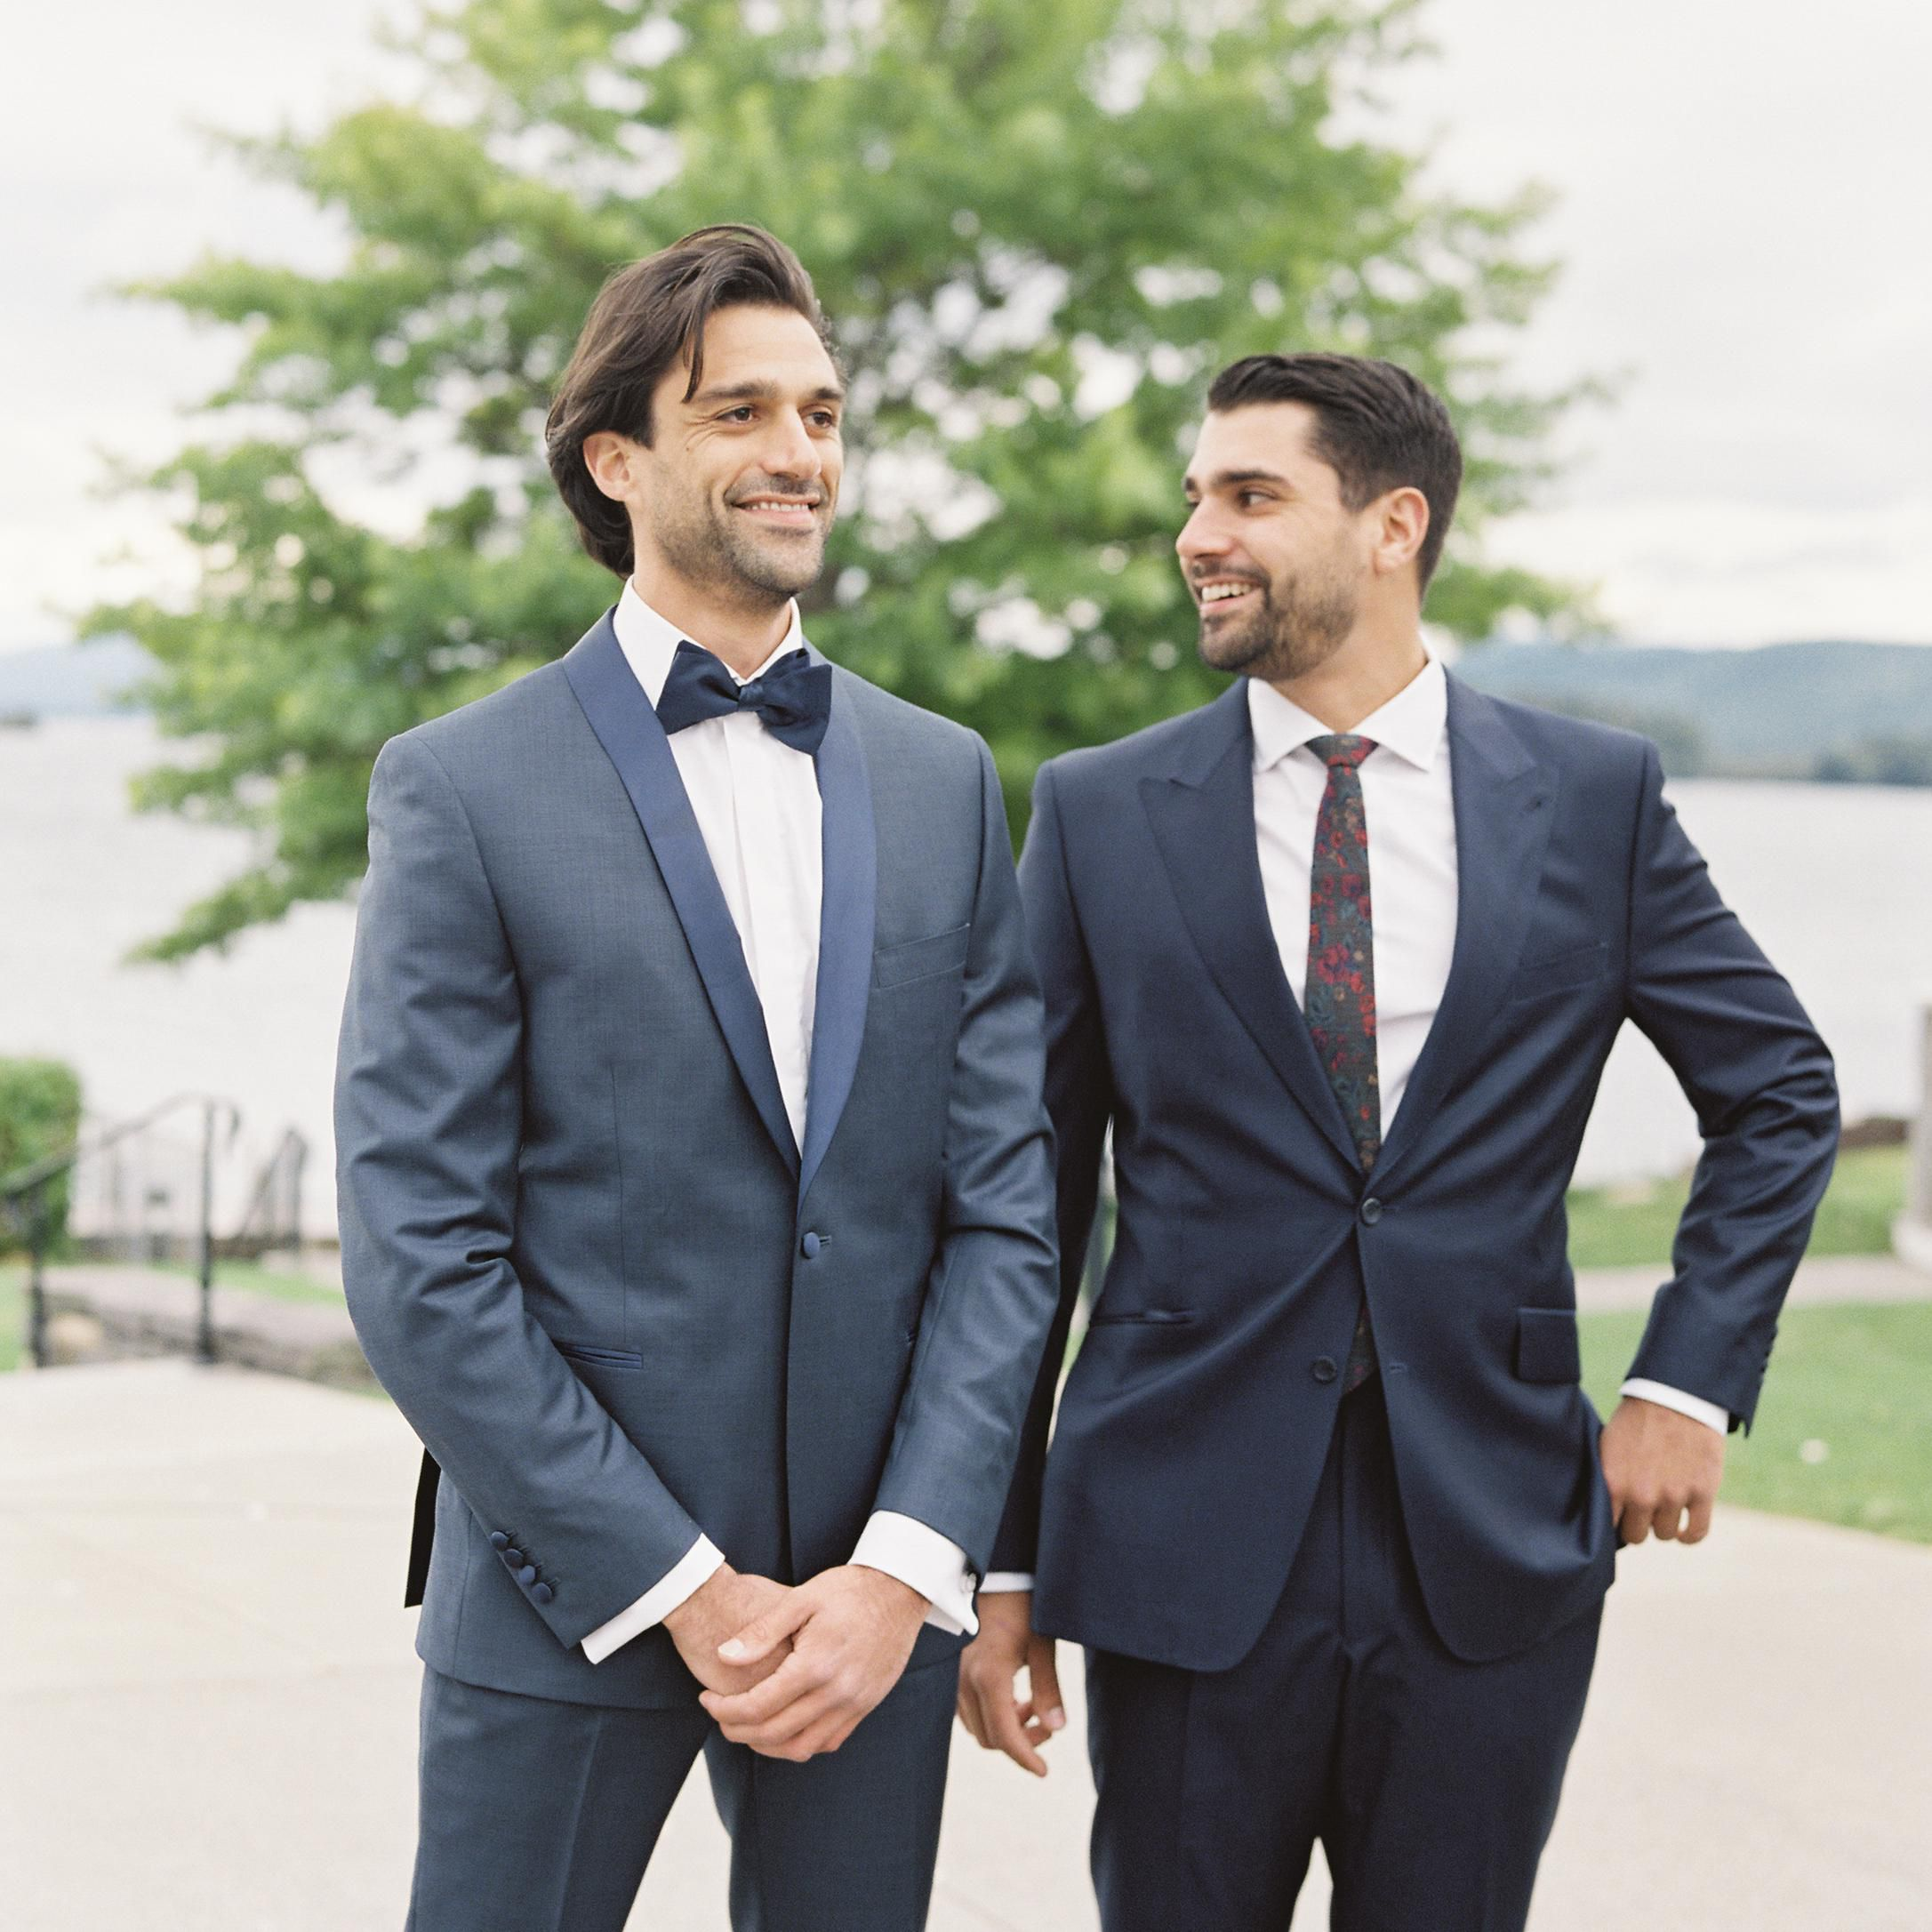 5 Tweets That Get Real About Being A Best Man